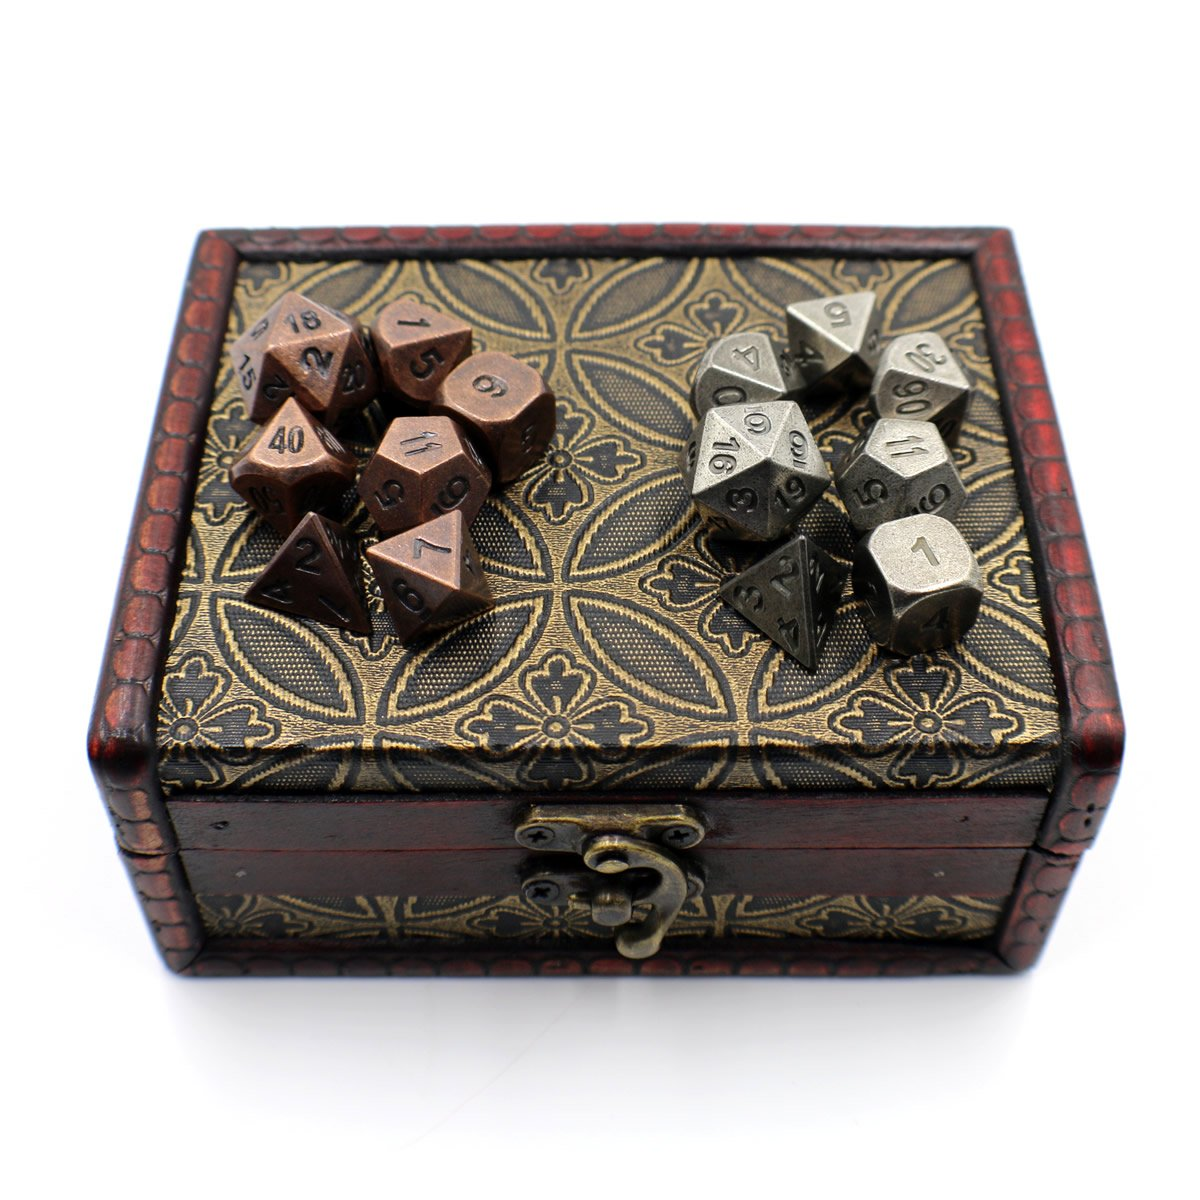 Twin Role Playing Metal Dice Sets with Storage Chest for Tabletop Games by Dahan Dice (Image #4)